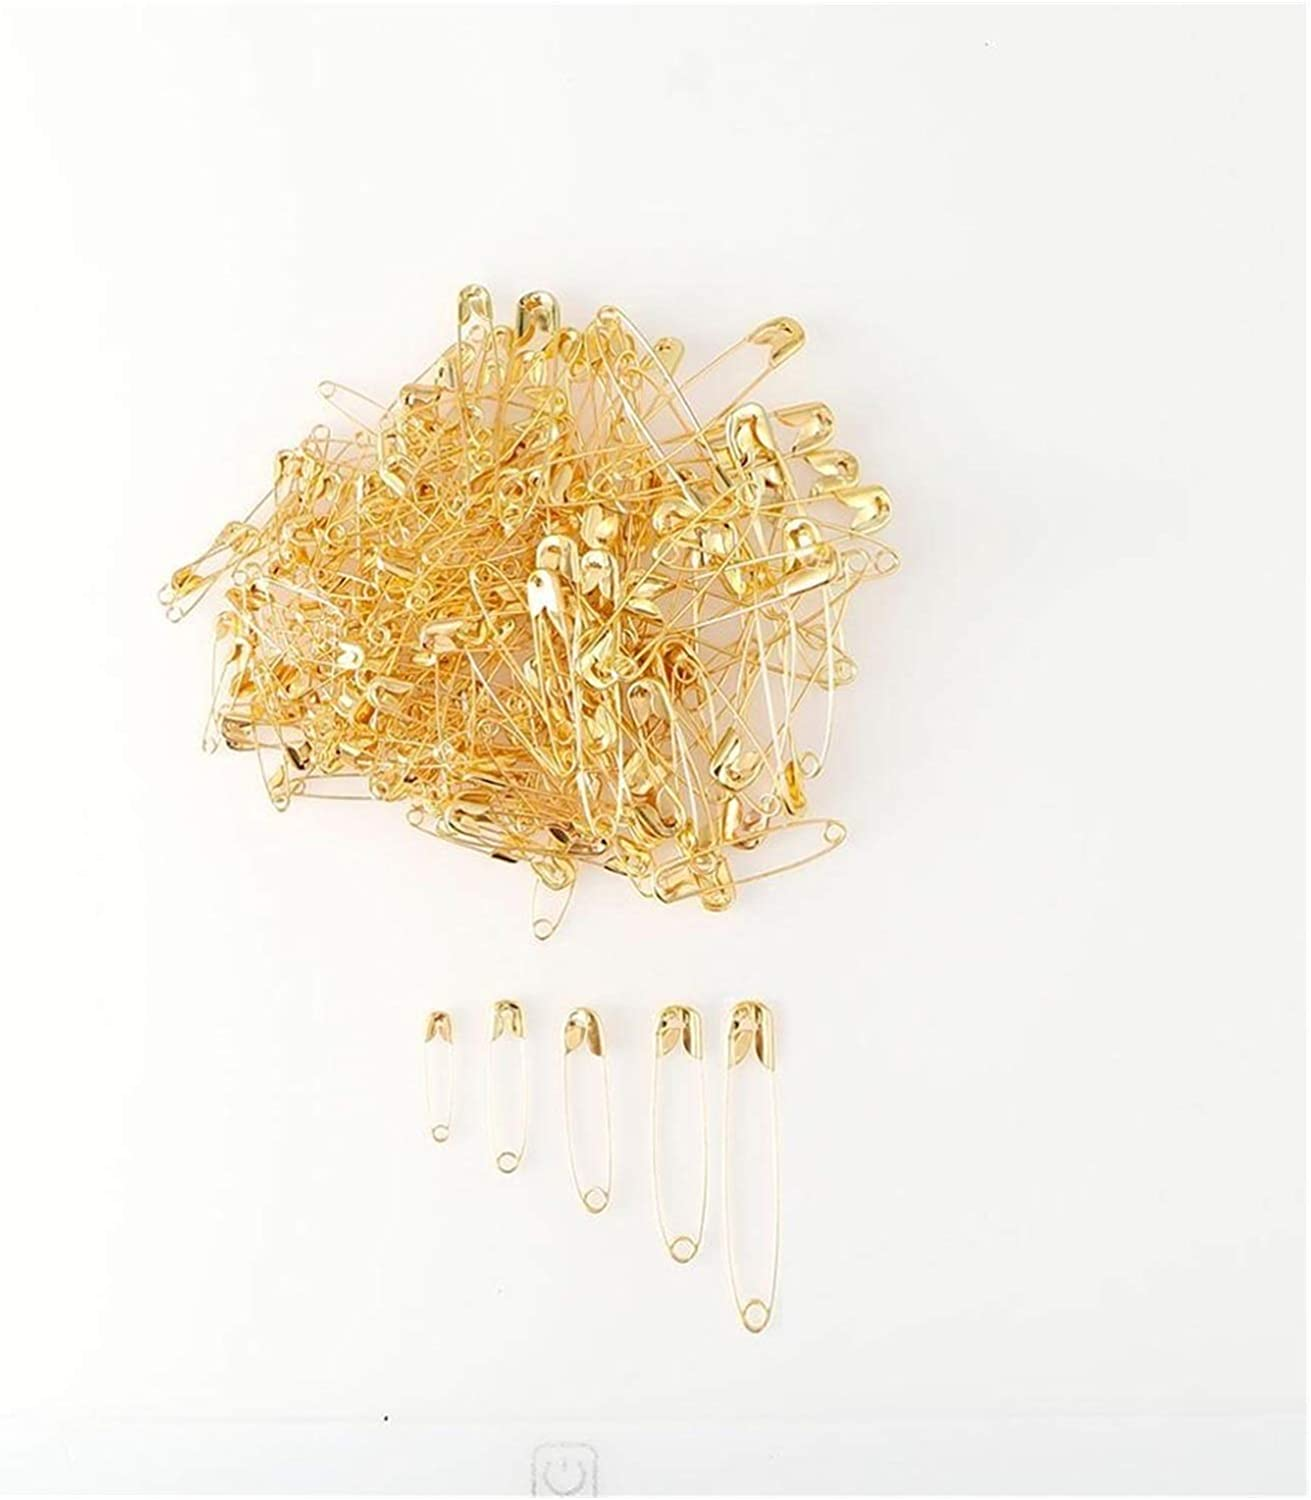 Shop-PEJ DIY 1000Pcs 22 Tampa OFFicial shop Mall 28 38 45 P Gold Small Silver Safety 54mm